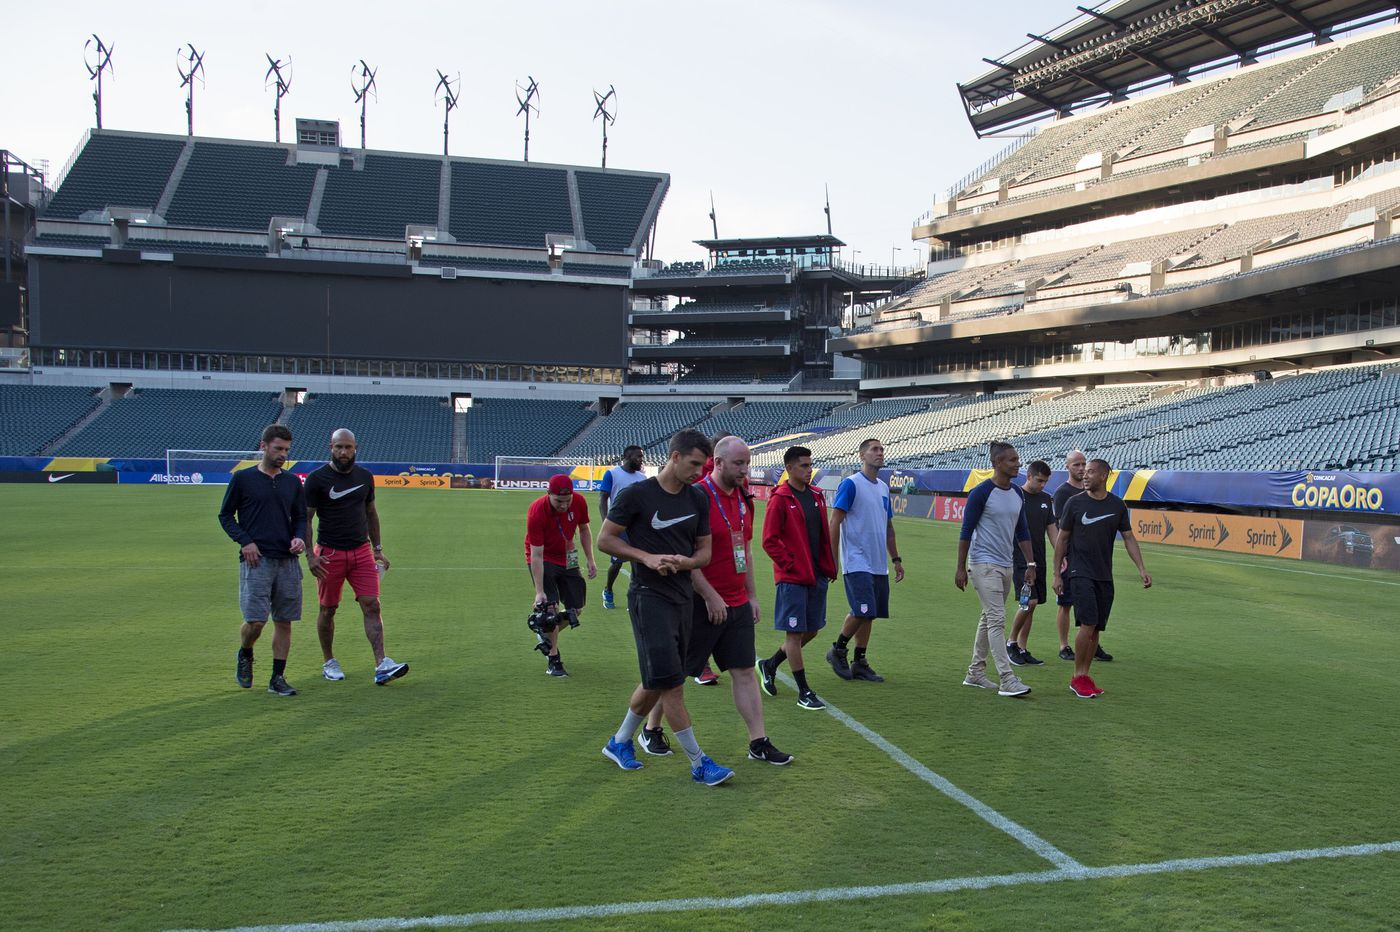 Lincoln Financial Field to host 2019 Concacaf Gold Cup quarterfinal doubleheader